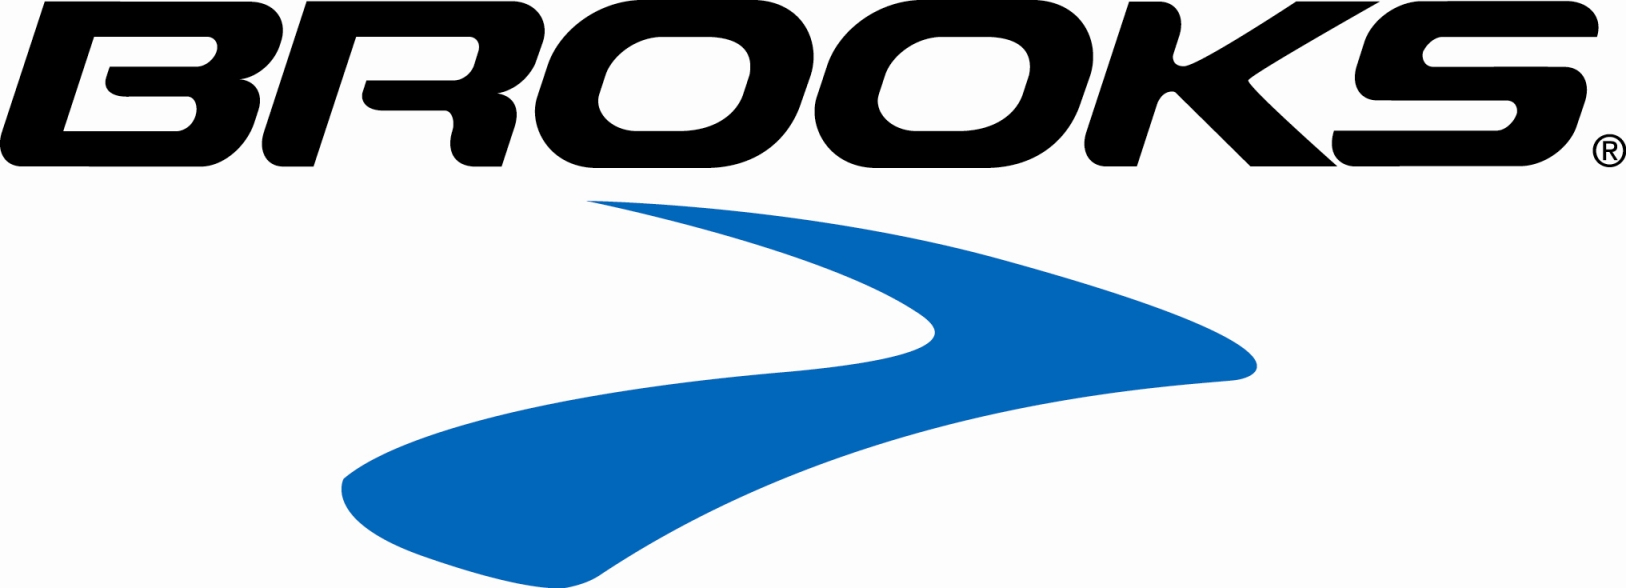 Brooks-Logo1.jpg